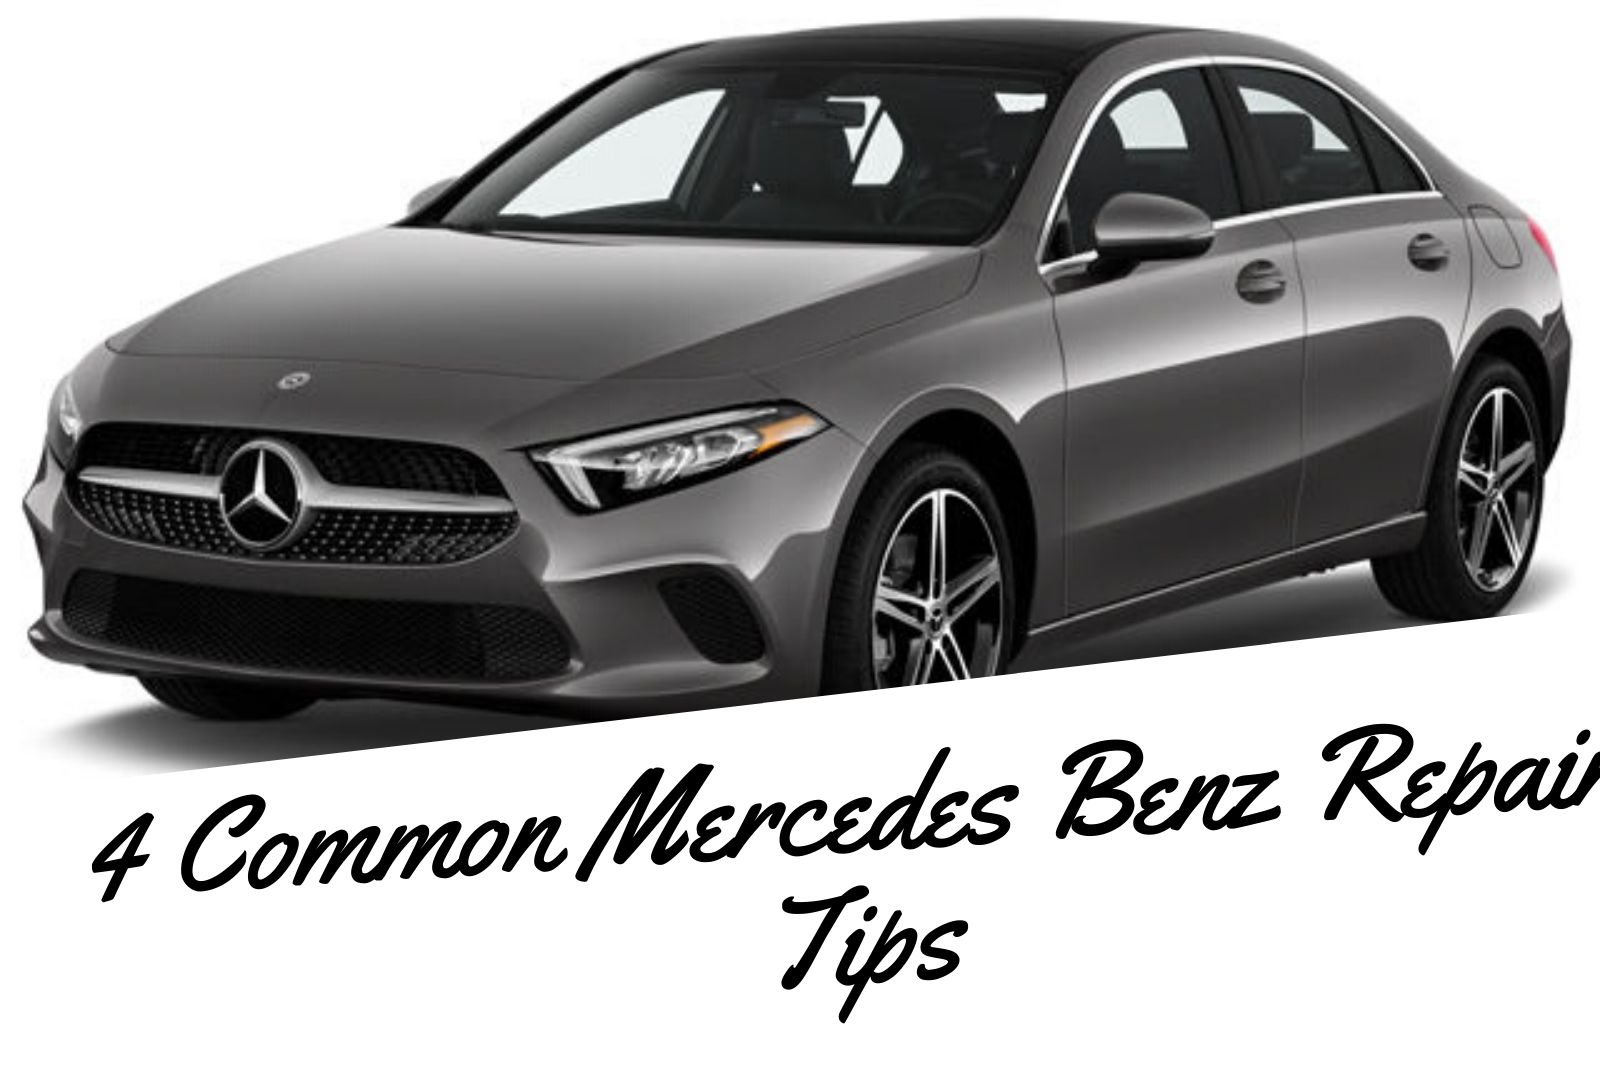 4 Common Mercedes Benz Repair Tips